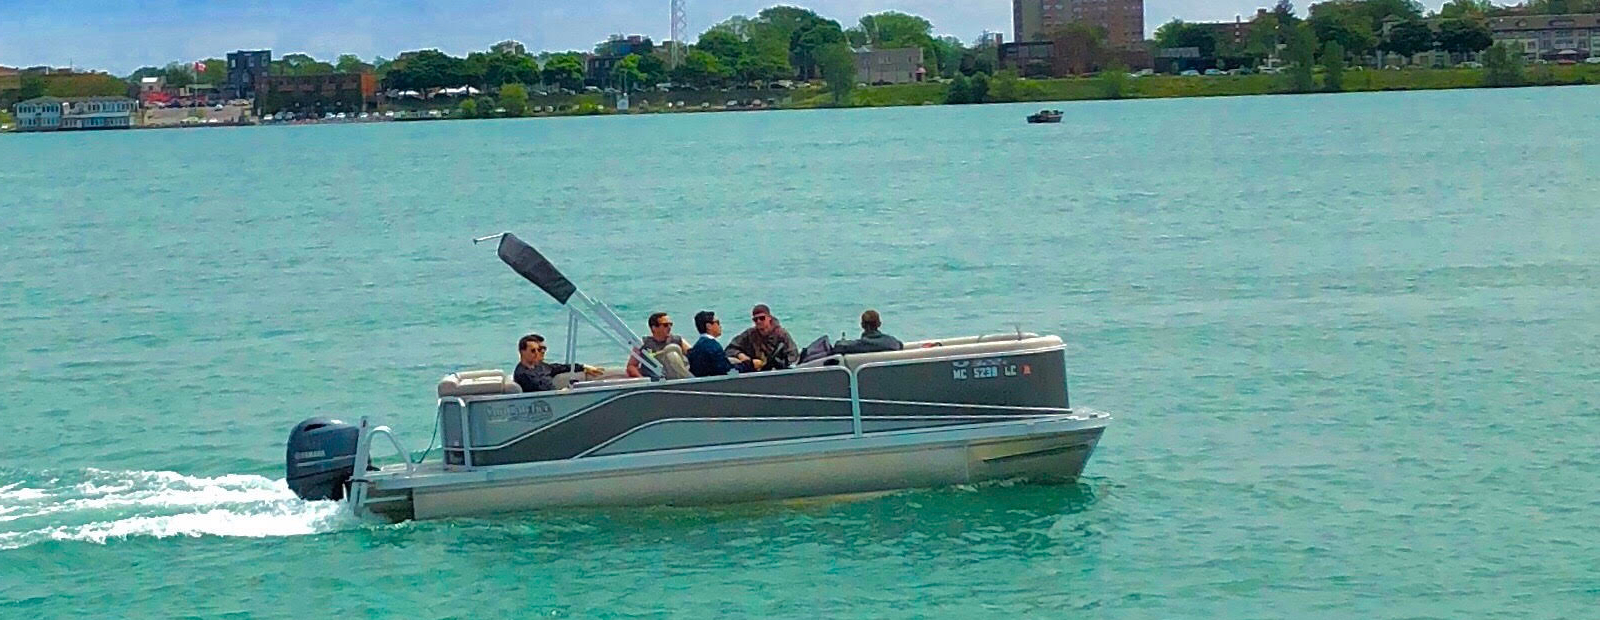 Entertain family and friends on the water this summer by renting a boat.